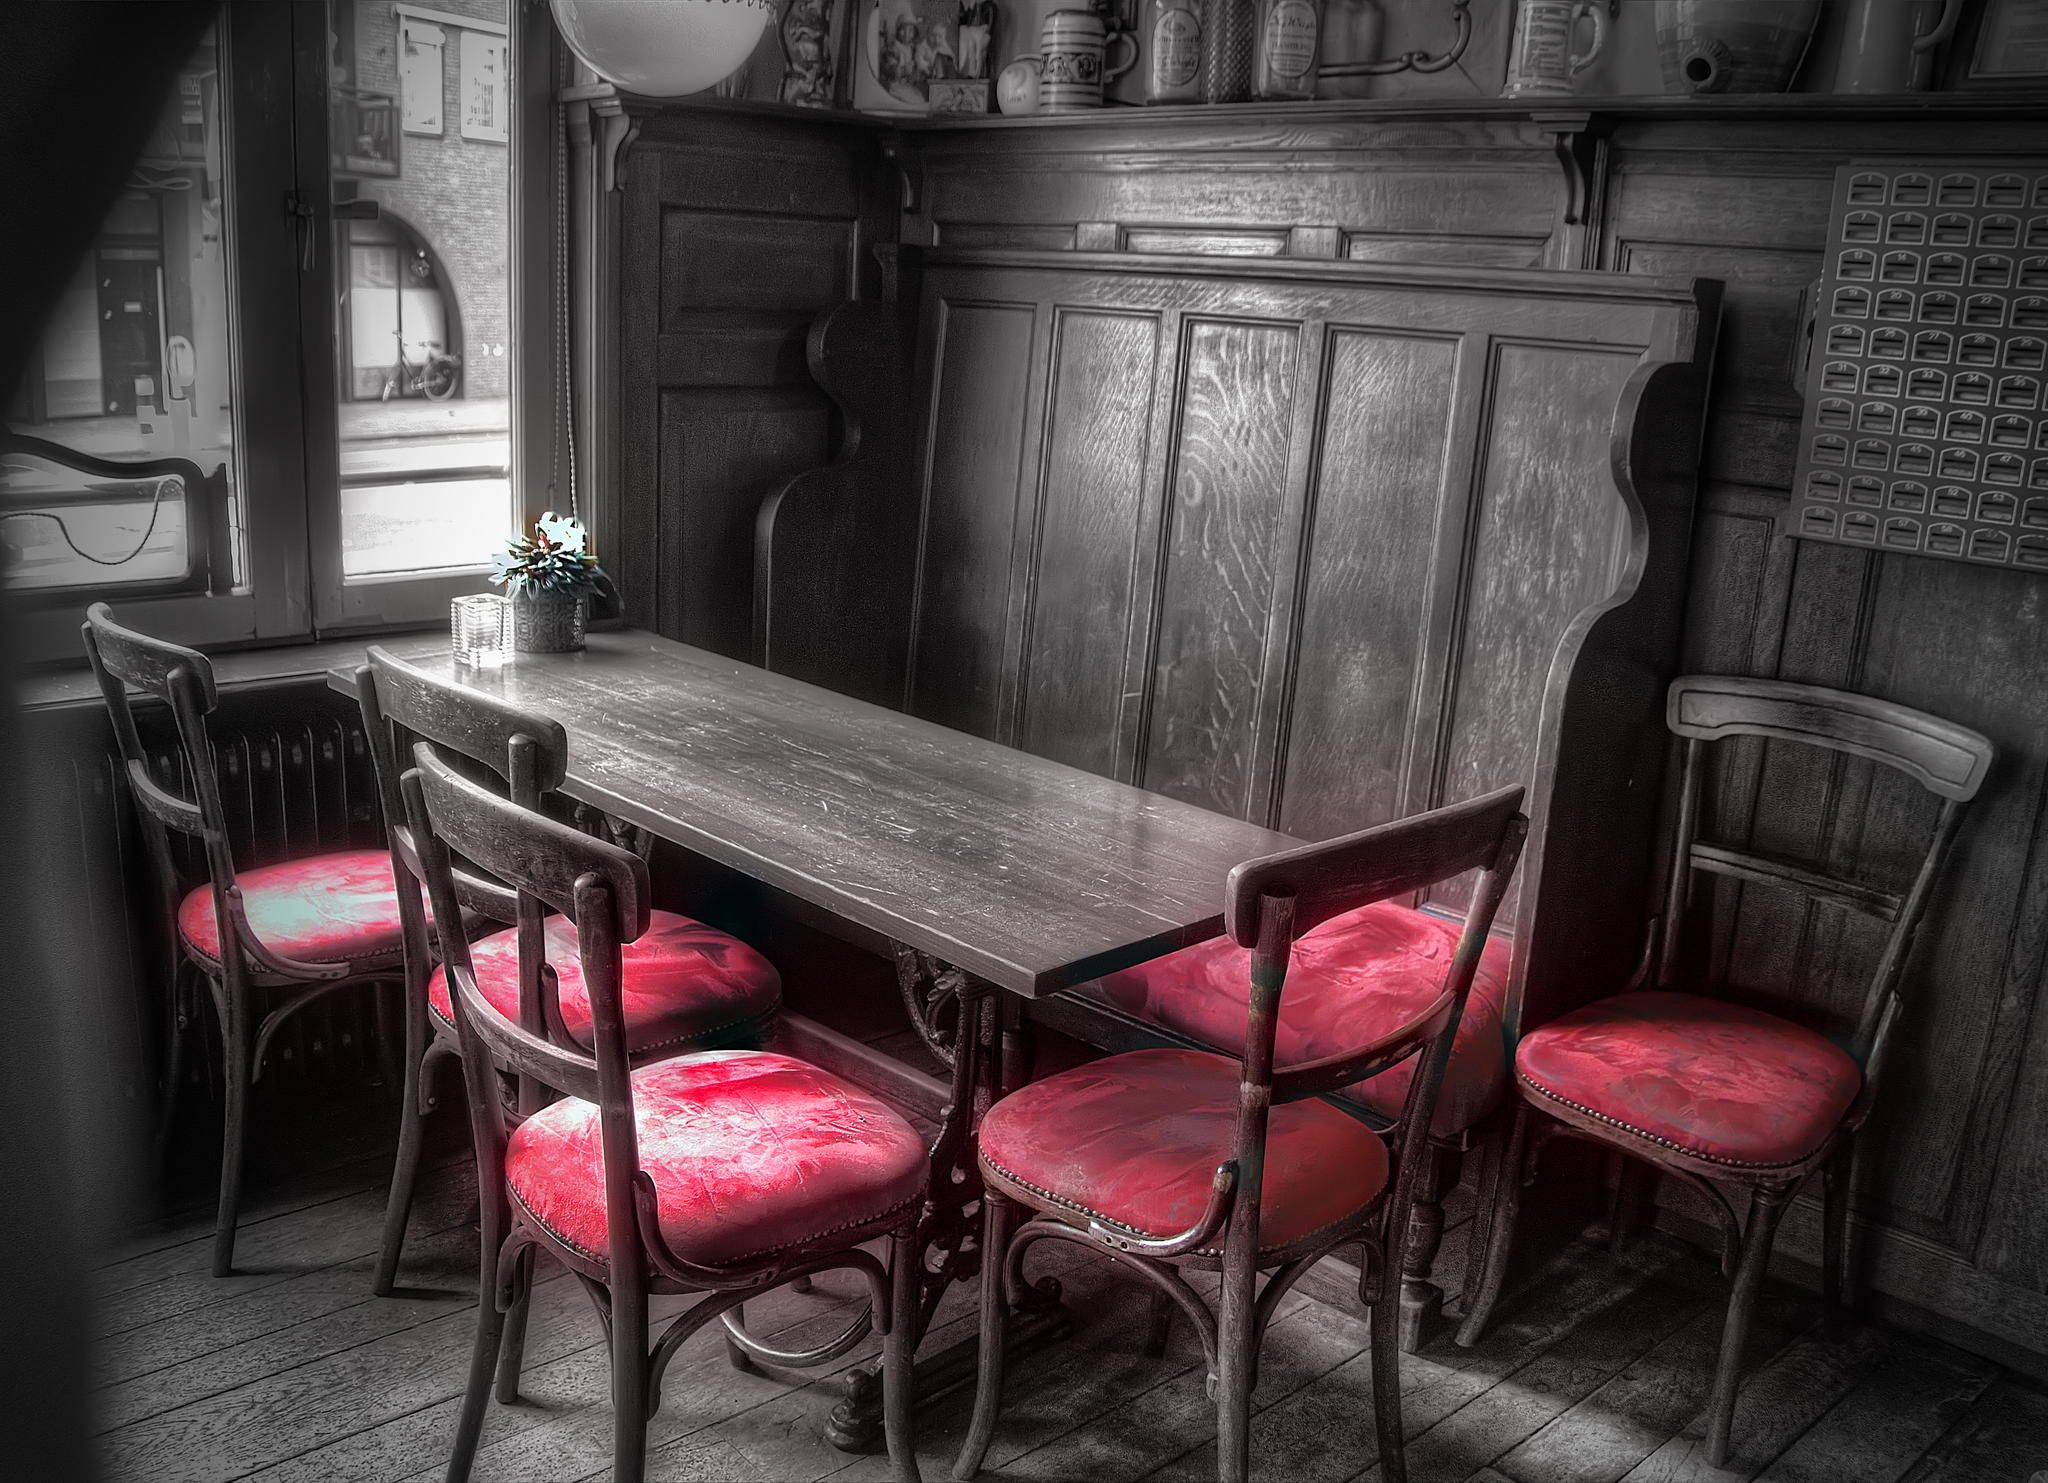 Old cafe interior (by Ton   lع Jeune) [touch of red chair]